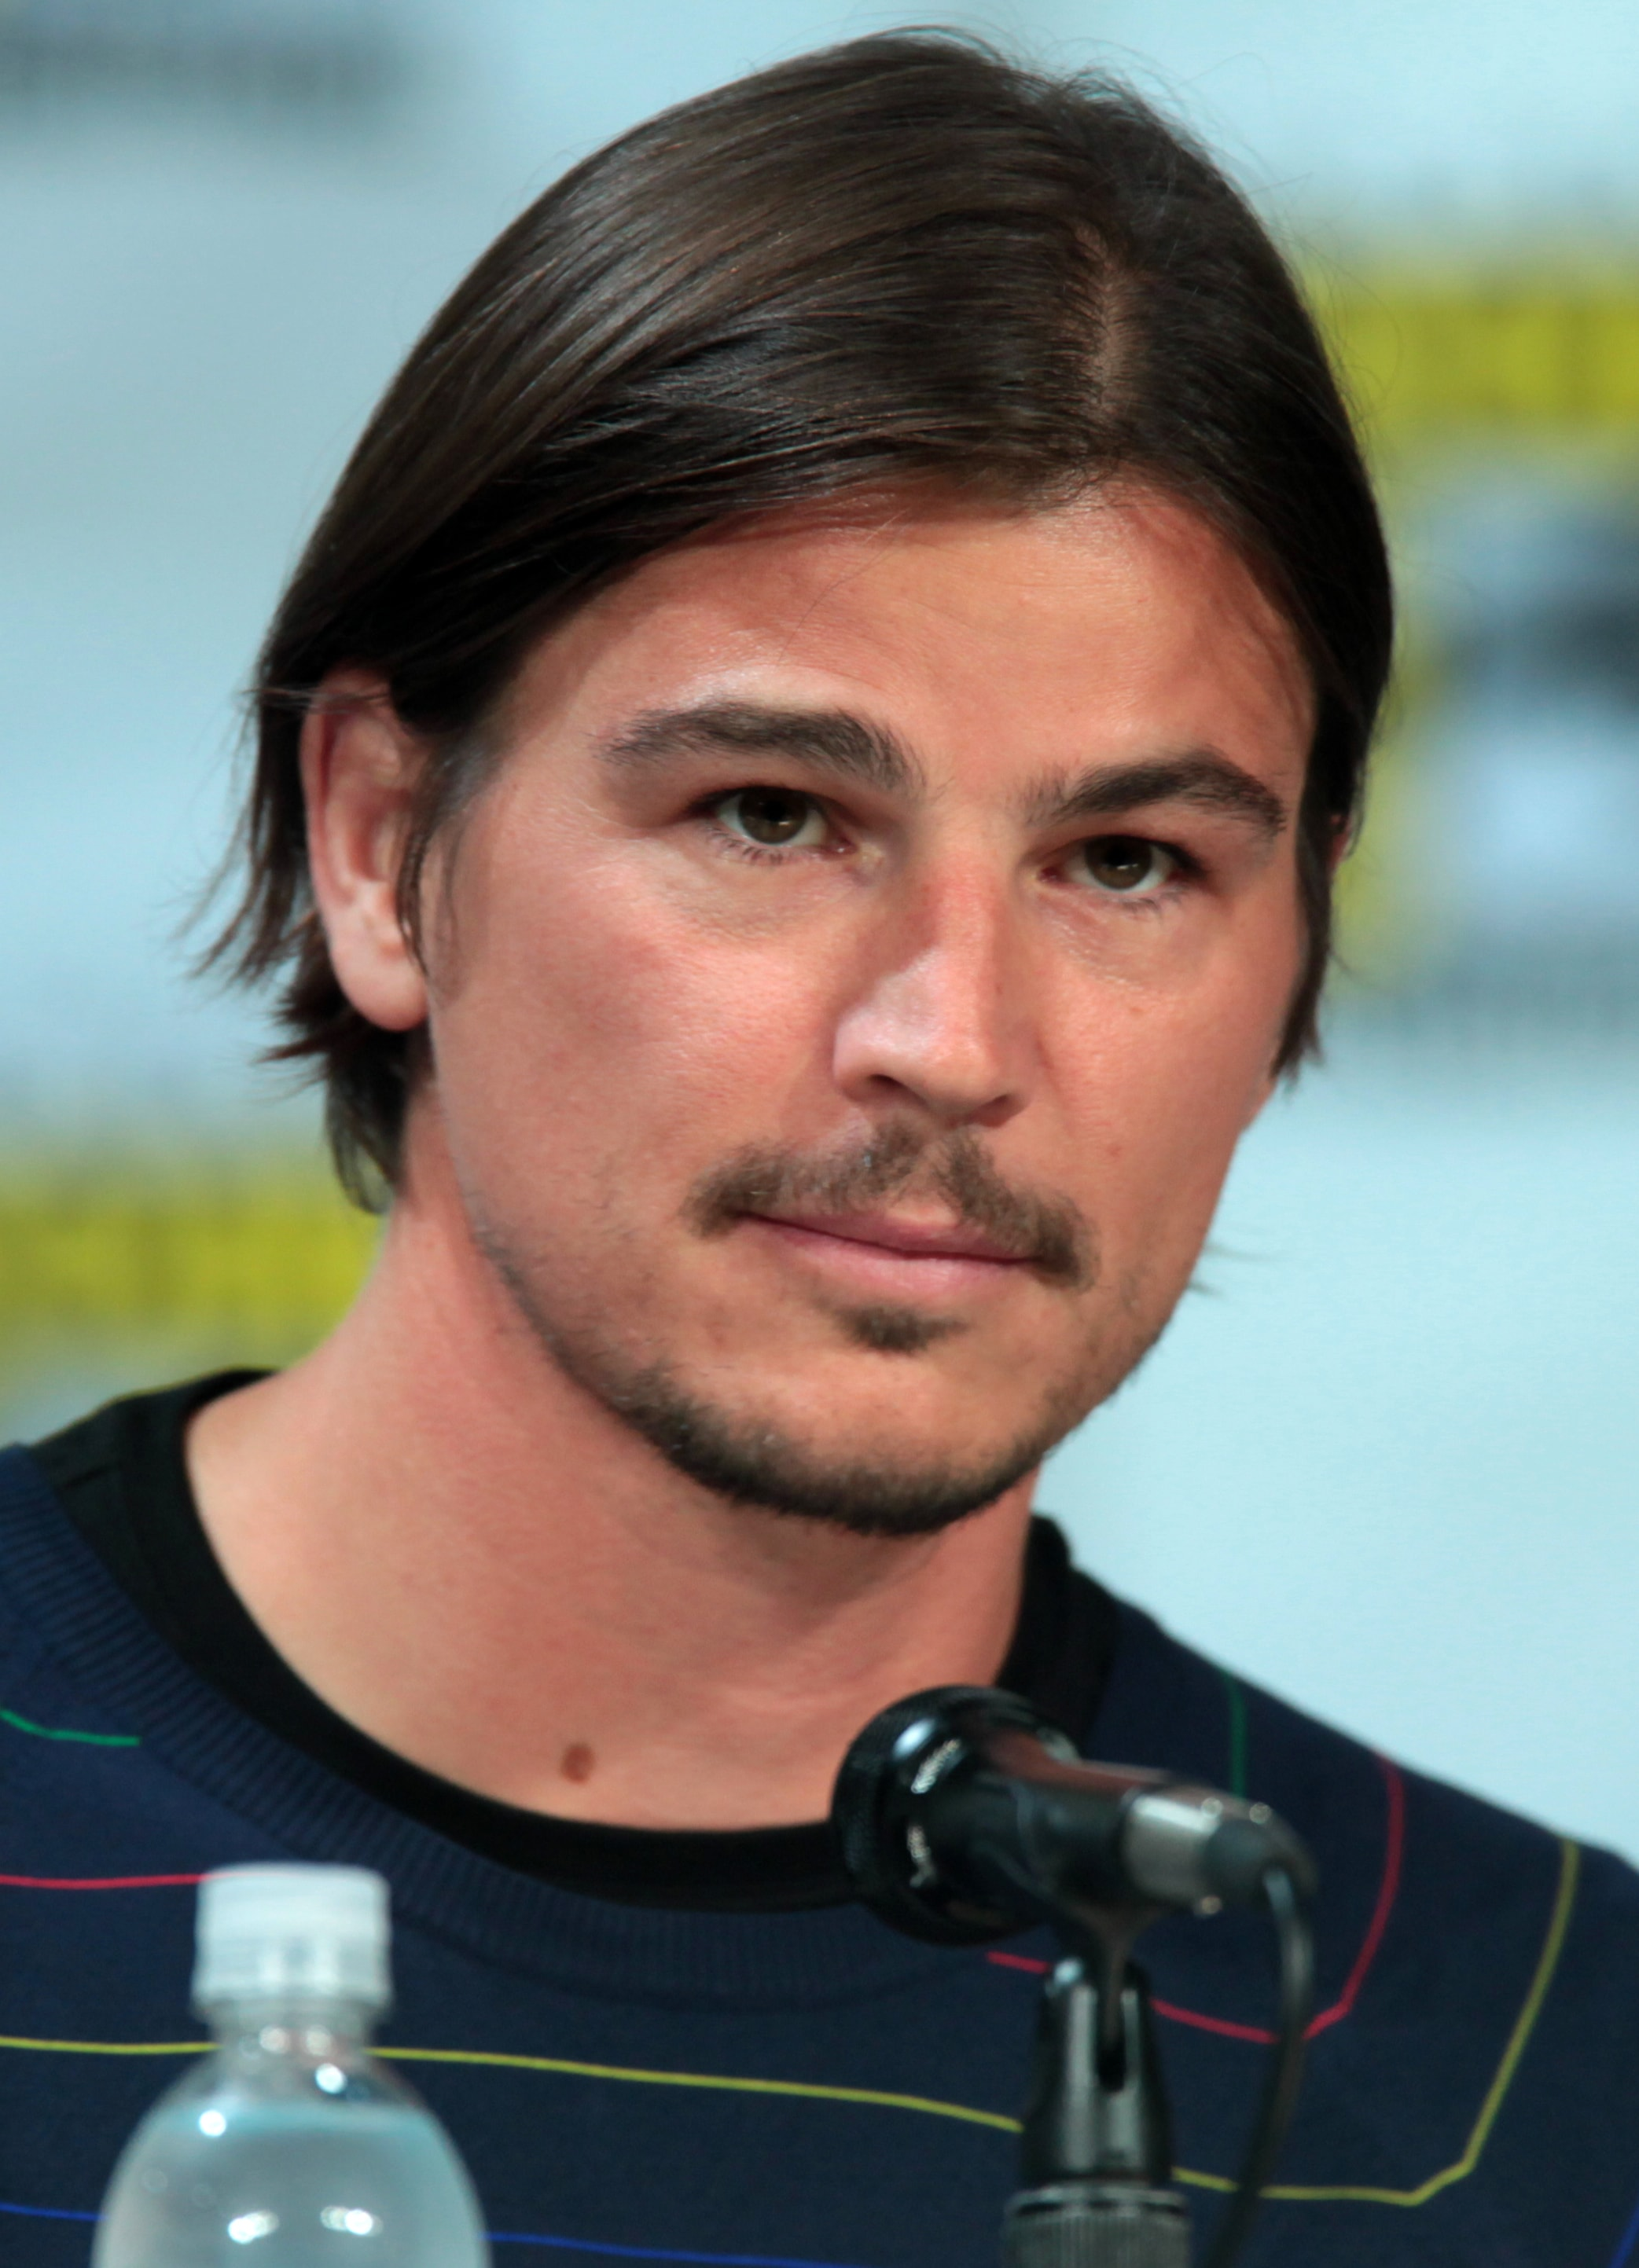 Josh Hartnett Wallpapers